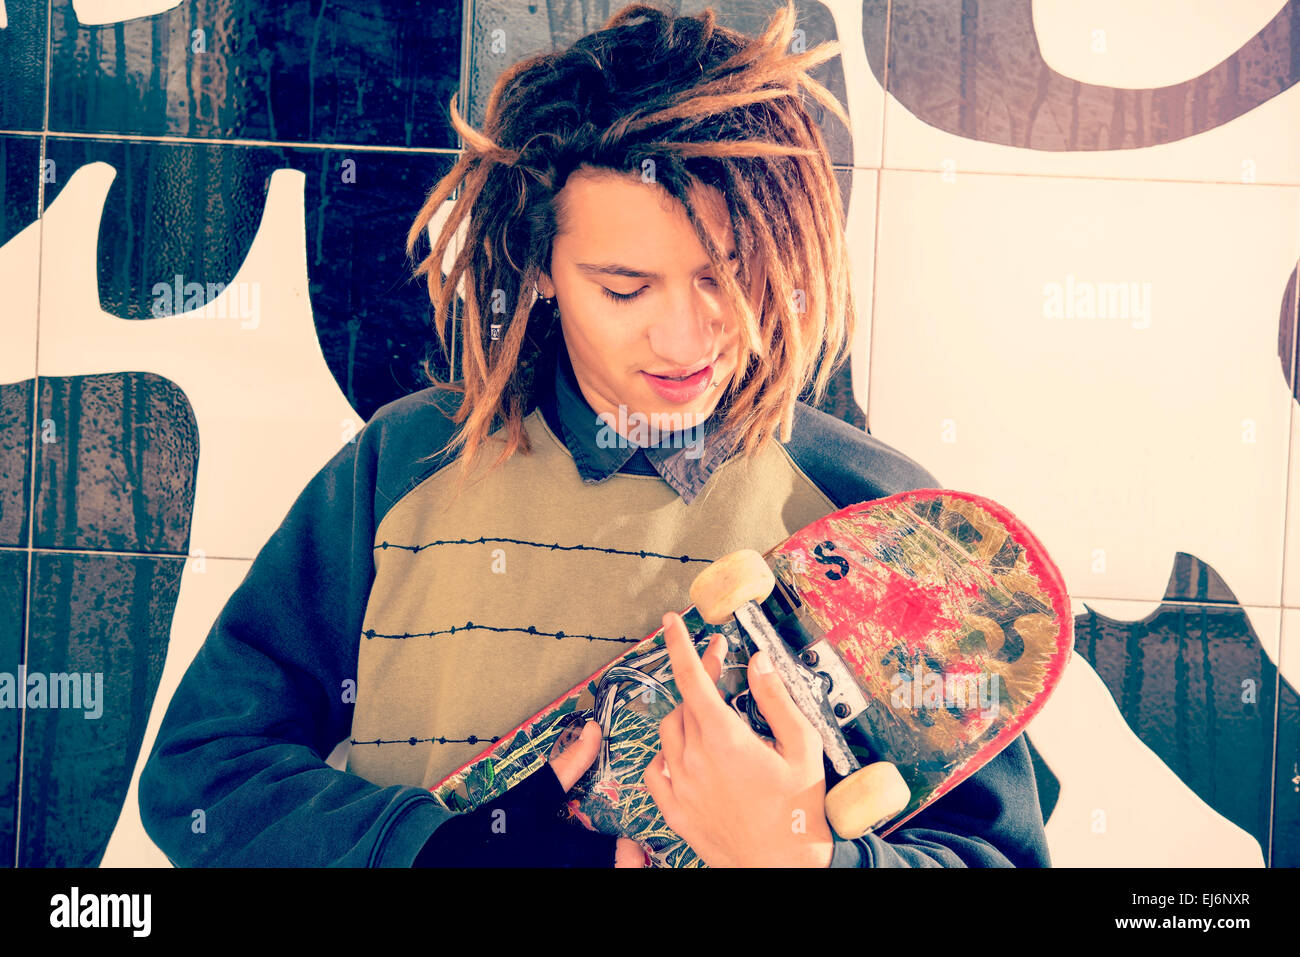 portrait of young guy  with skate and rasta hair in a lifestyle concept warm filter applied Stock Photo